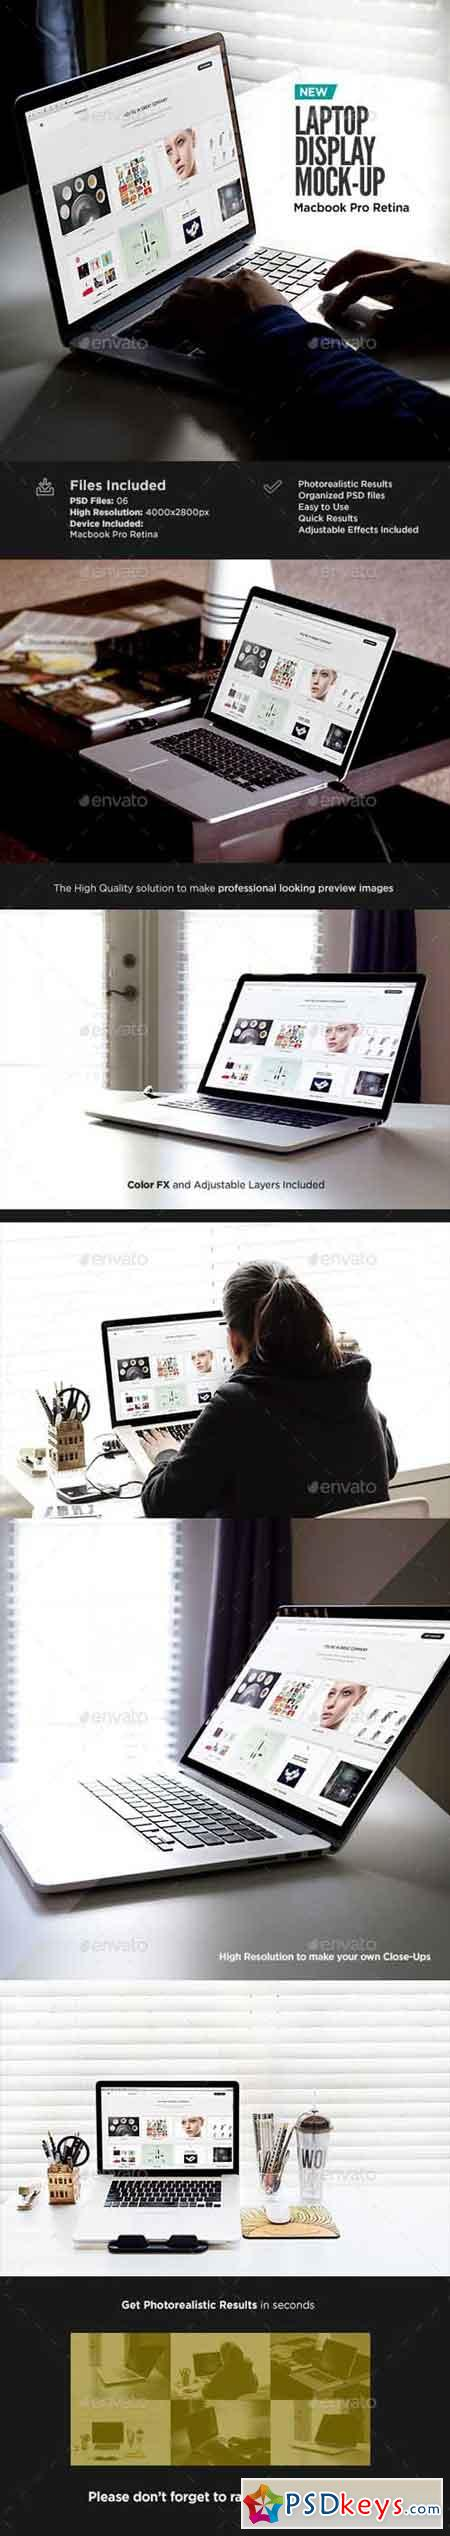 Macbook Retina Display Mock-Up 13620370